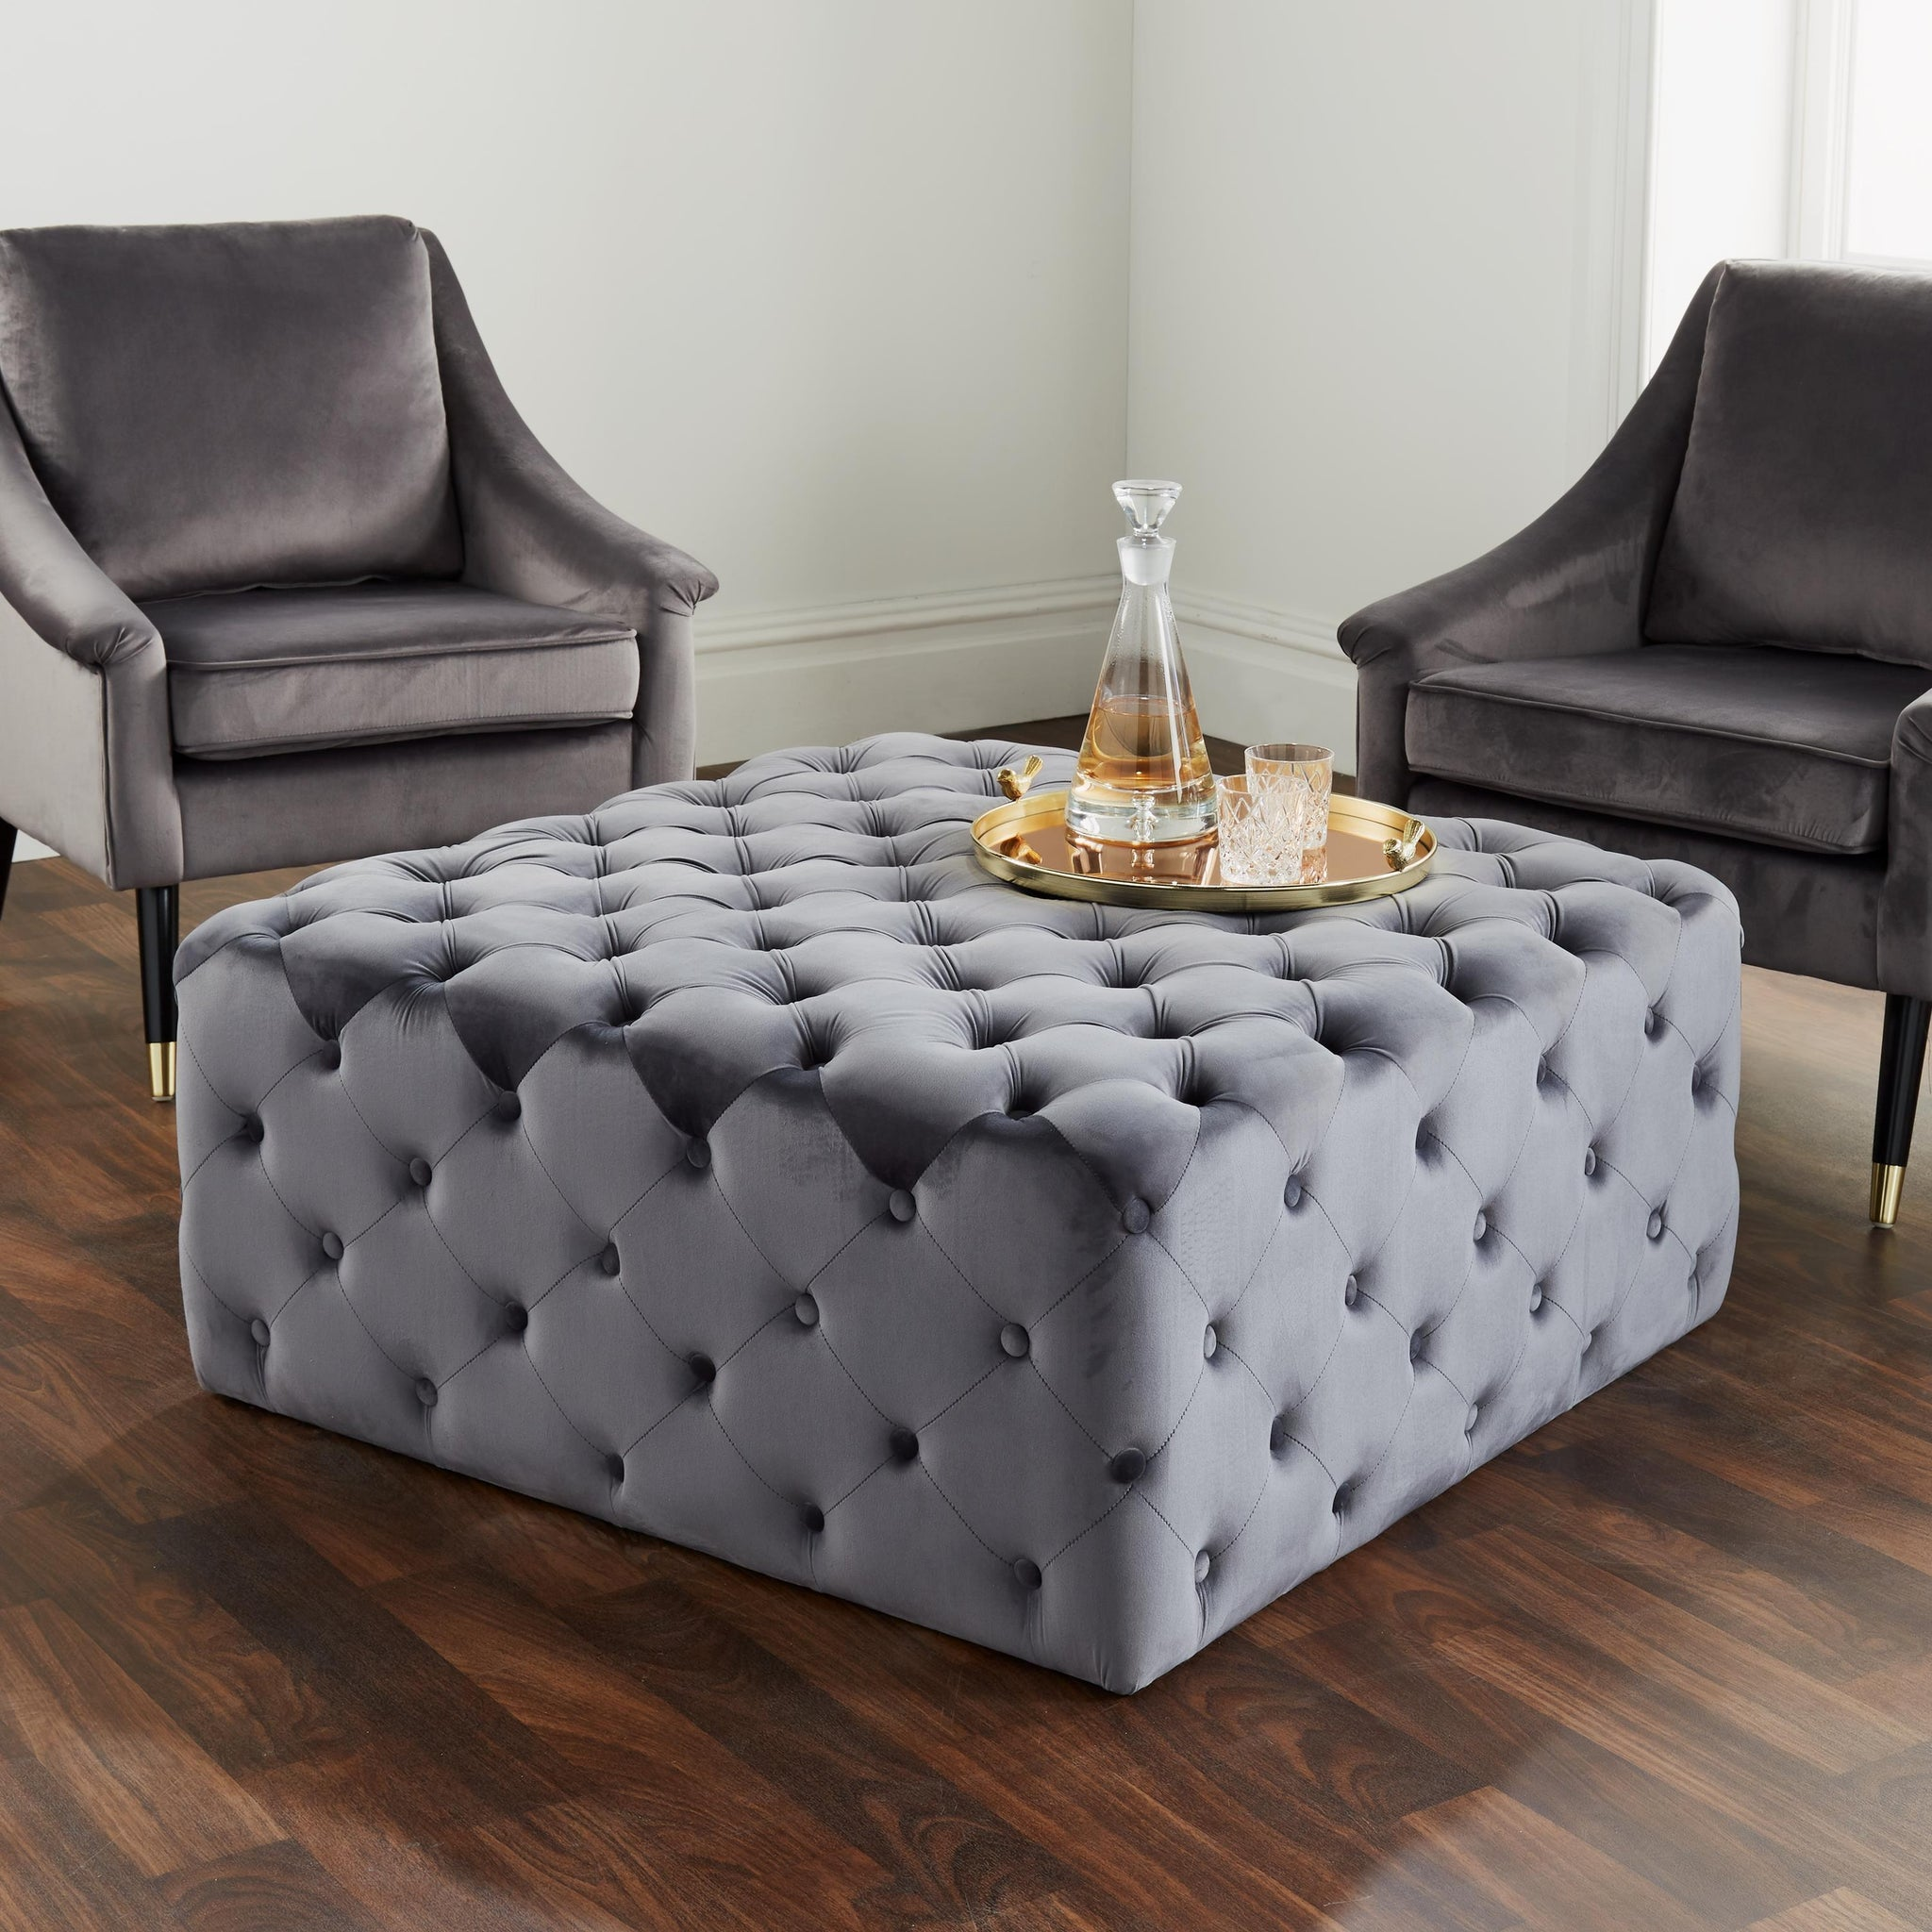 Button Grey Cocktail Ottoman Coffee Table